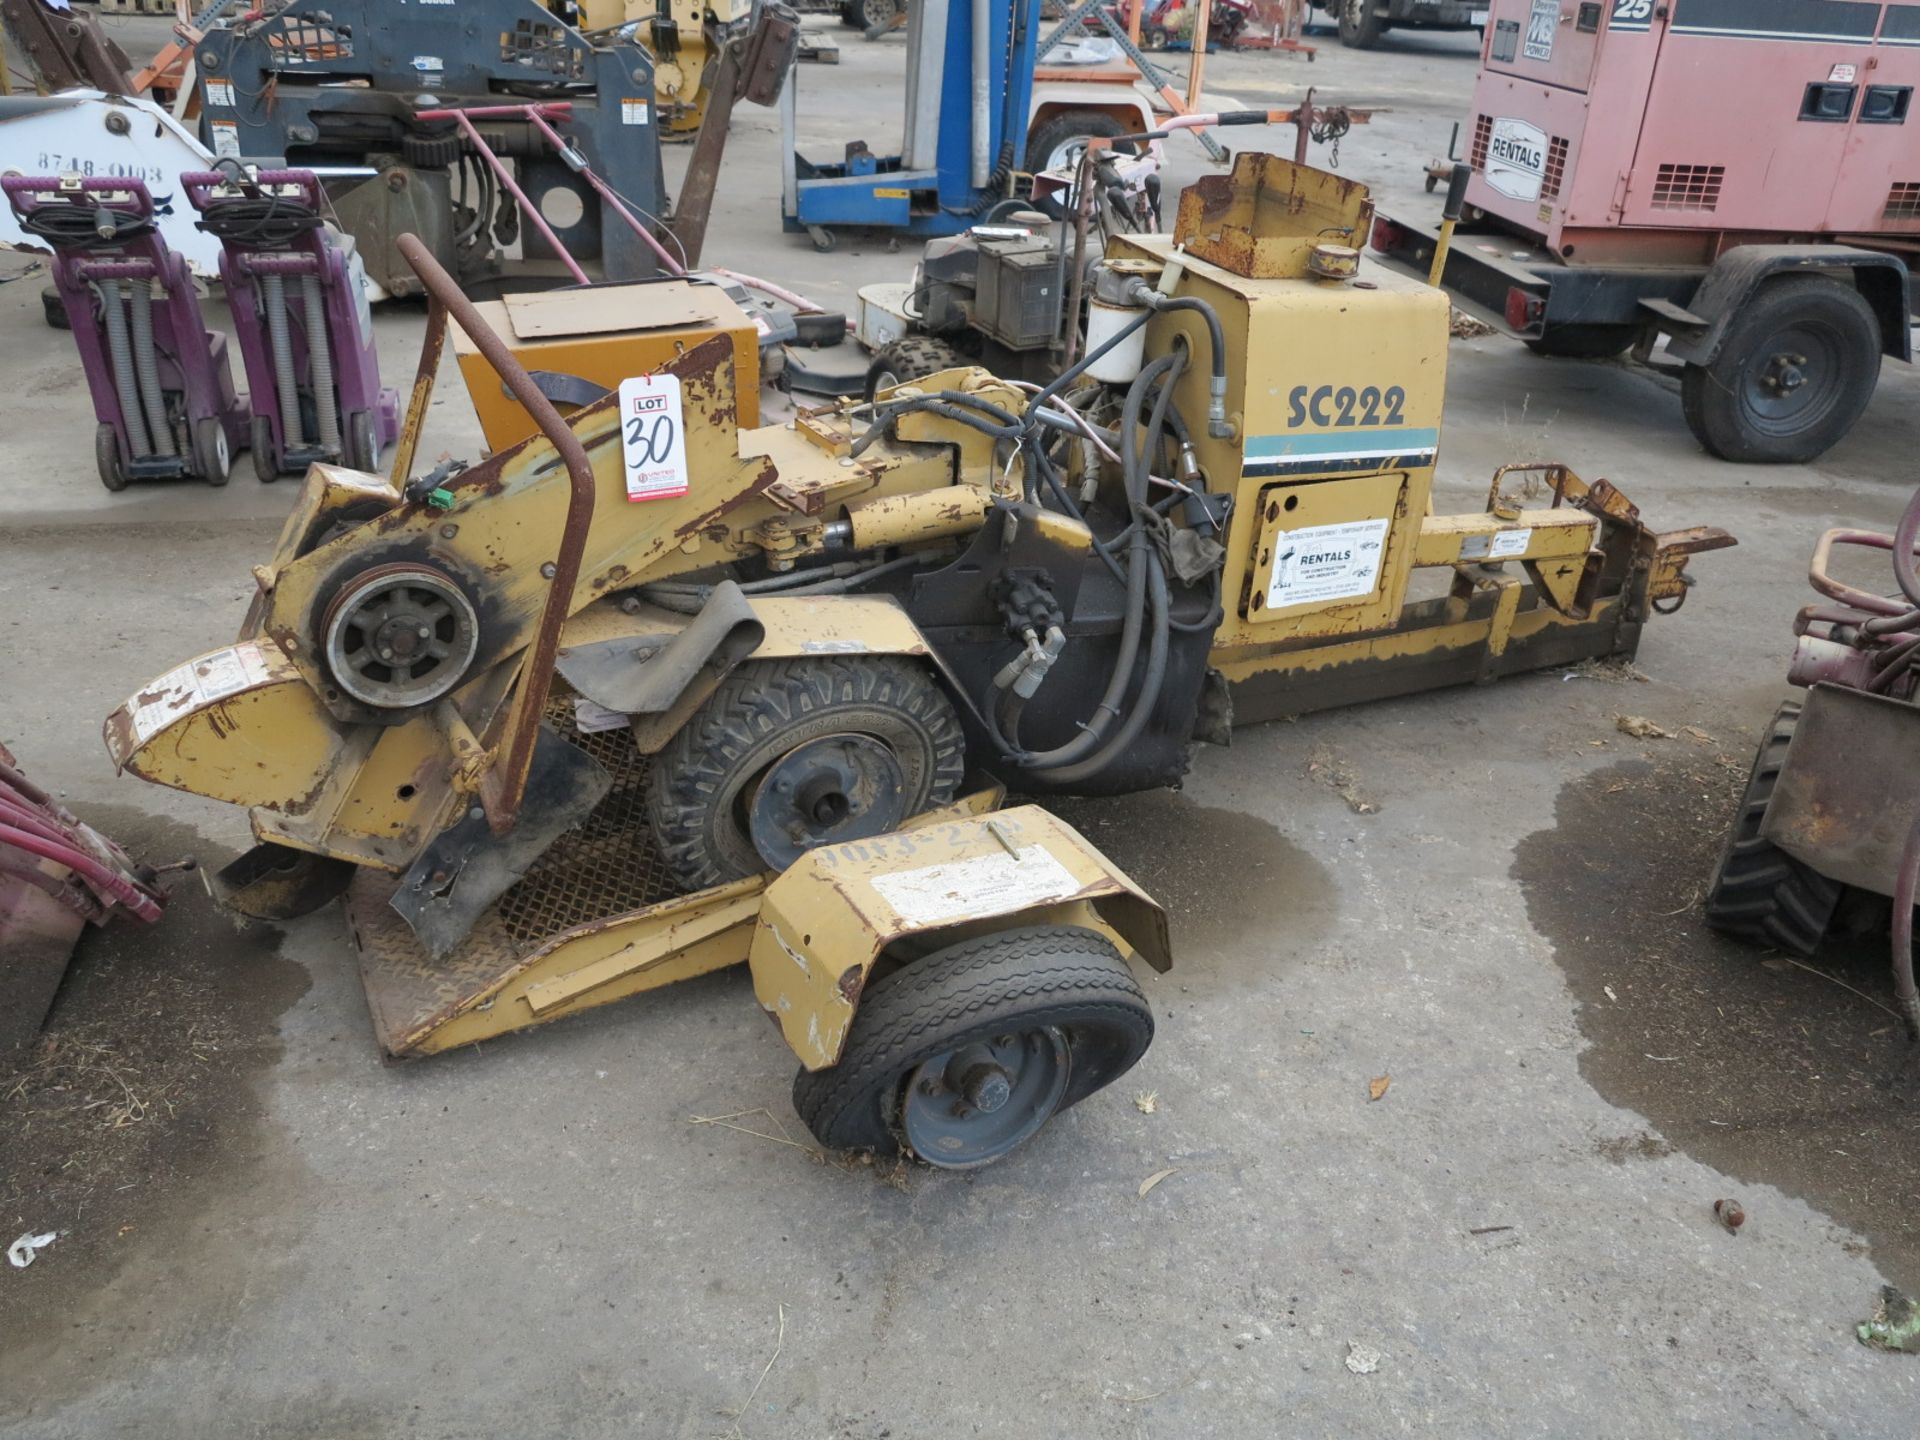 Lot 30 - SC222 STUMP GRINDER, W/ TRAILER (OUT OF SERVICE)